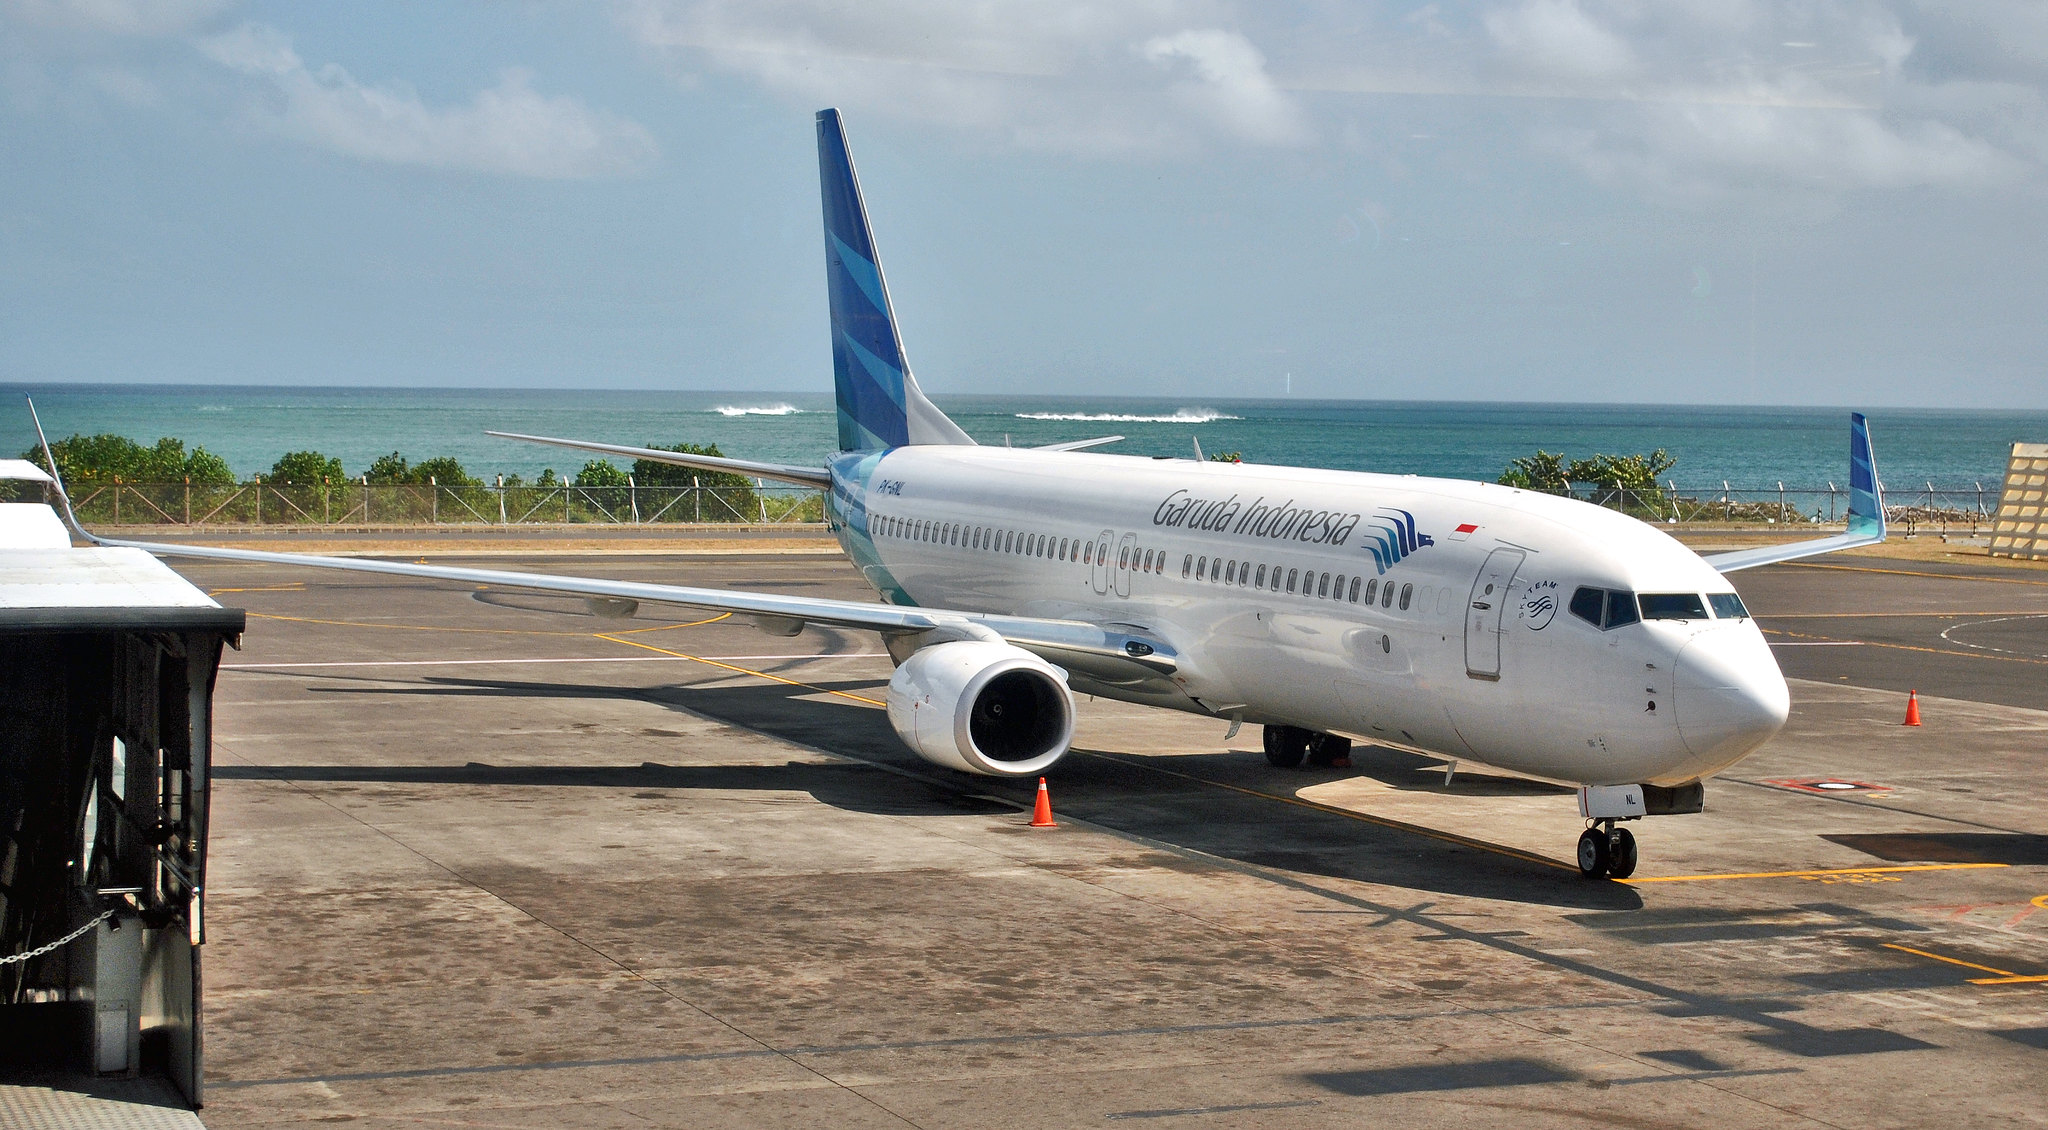 Aviation in Indonesia: How safe is it?